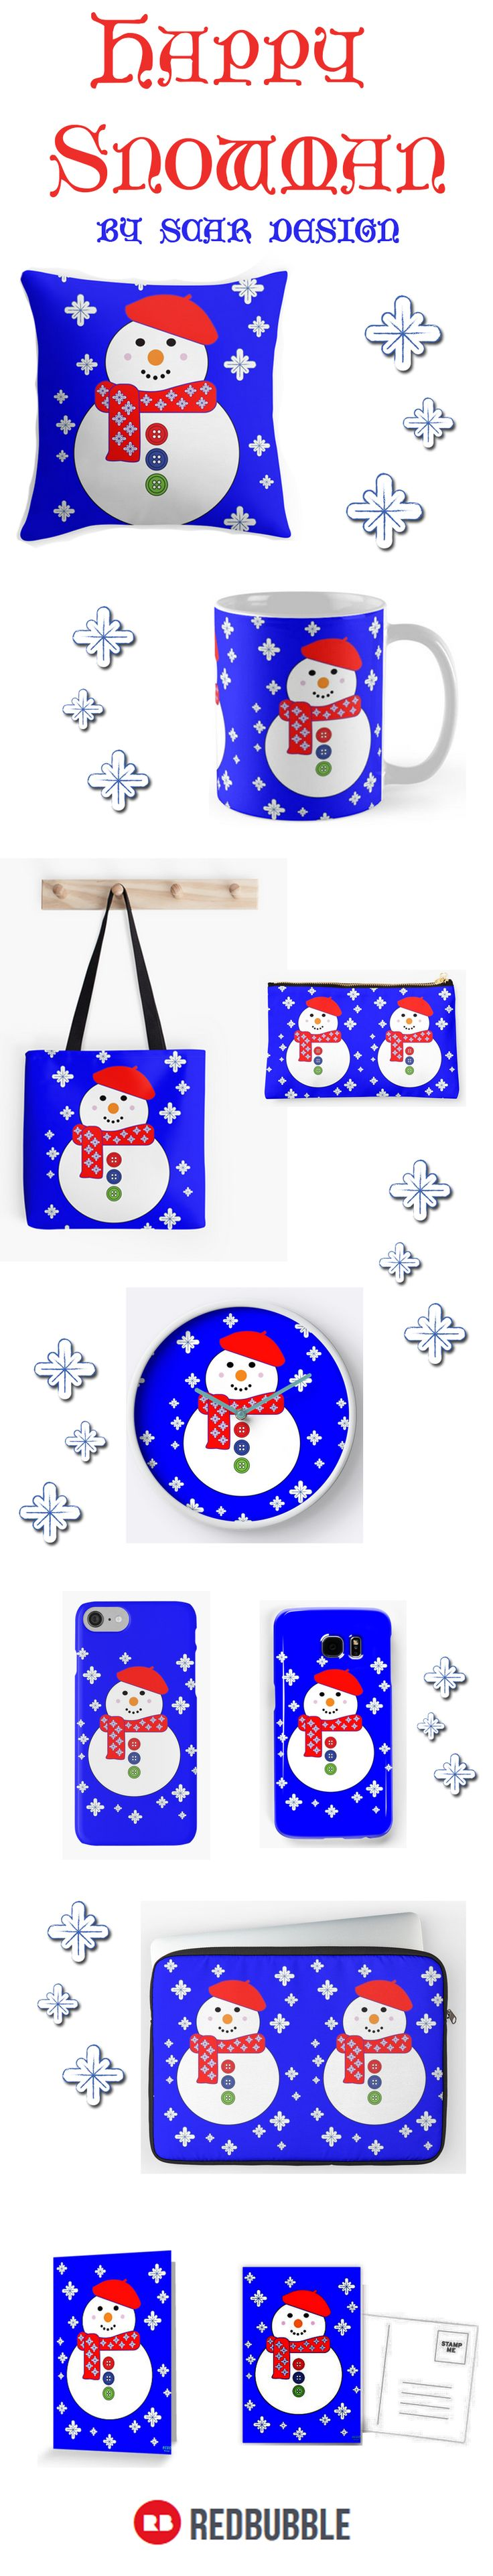 Happy Snowman Gifts by Scar Design #Christmas #christmasgifts #christmassnowman #christmasdecor #homedecor #snowman #snowmankidsroom #christmastotebag #organizepouch #snowmanpillow #kidsroom #kidsmug #snowmanmug #christmaspillow #home #homegifts #wallart #holidaygifts #snowmanclock #kidswallclock #wallclock#happy #love #jinglebells #merrychristmas #happyholidays #lovelygifts #giftsforhim #giftsforher #giftsforkids #santaclausgifts #snow #letitsnow #XmasGifts #Xmas